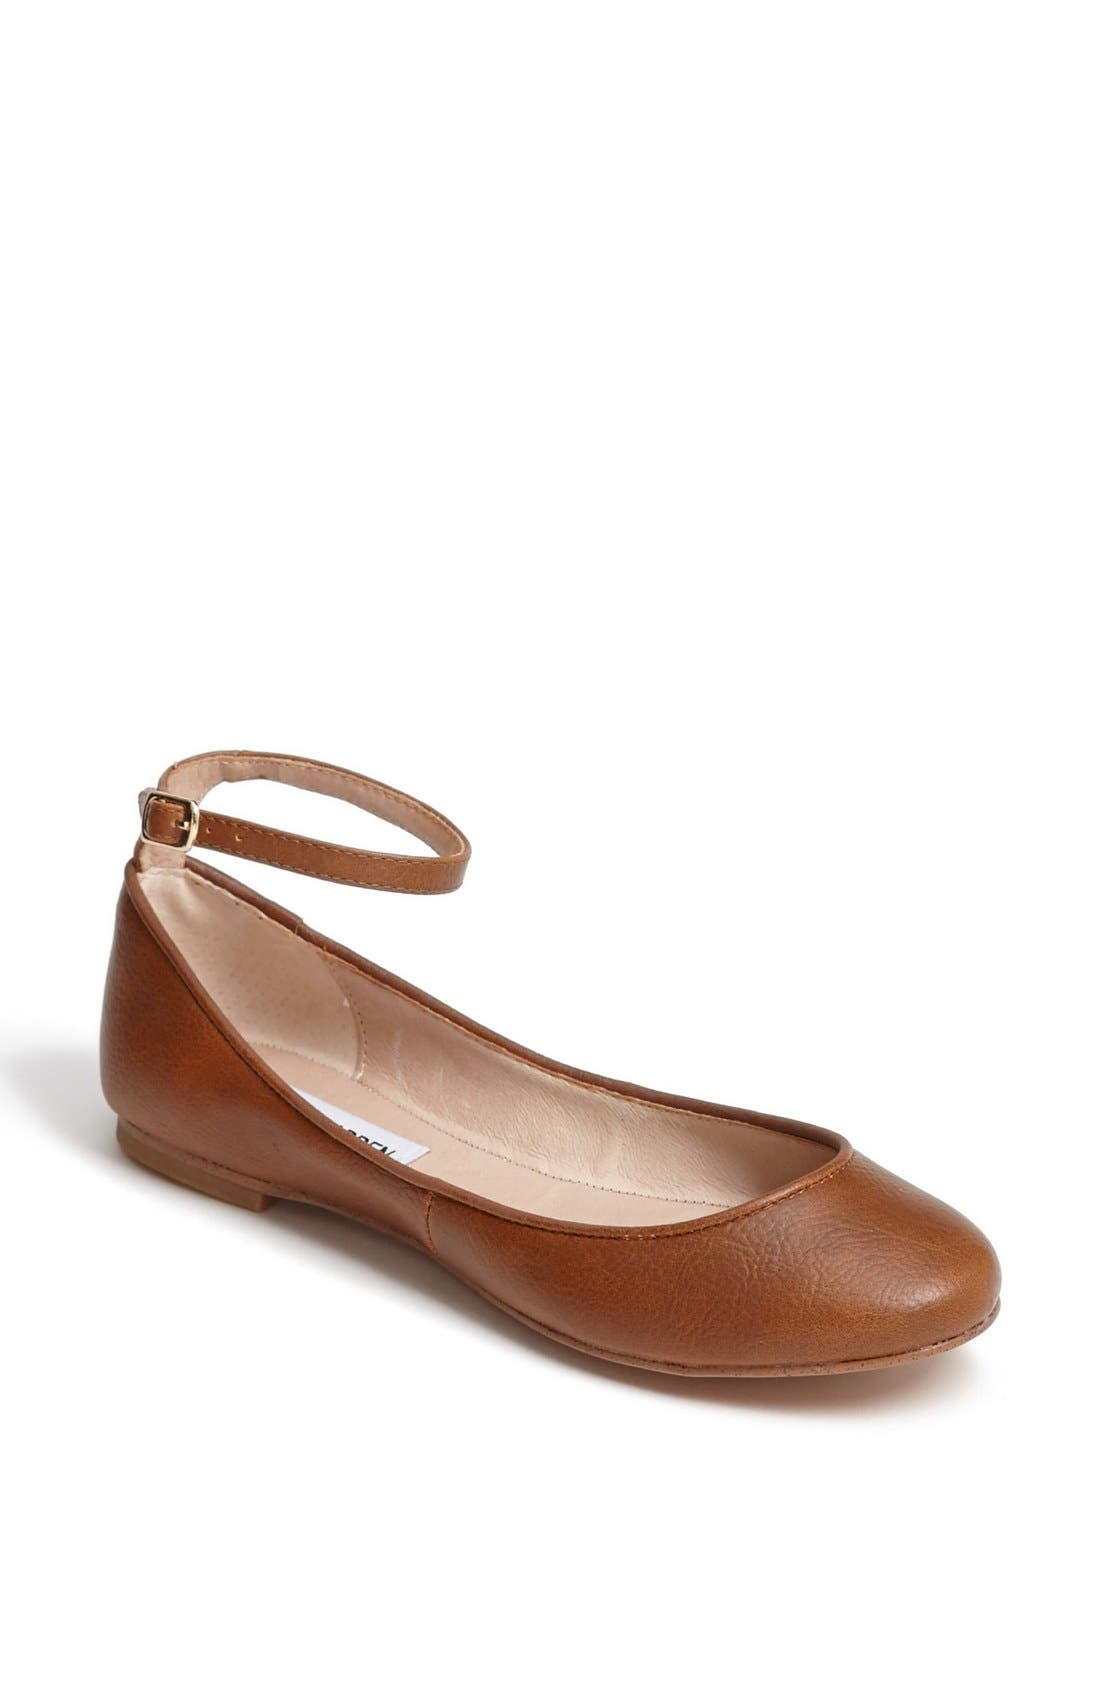 Alternate Image 1 Selected - Steve Madden 'Kovert' Flat